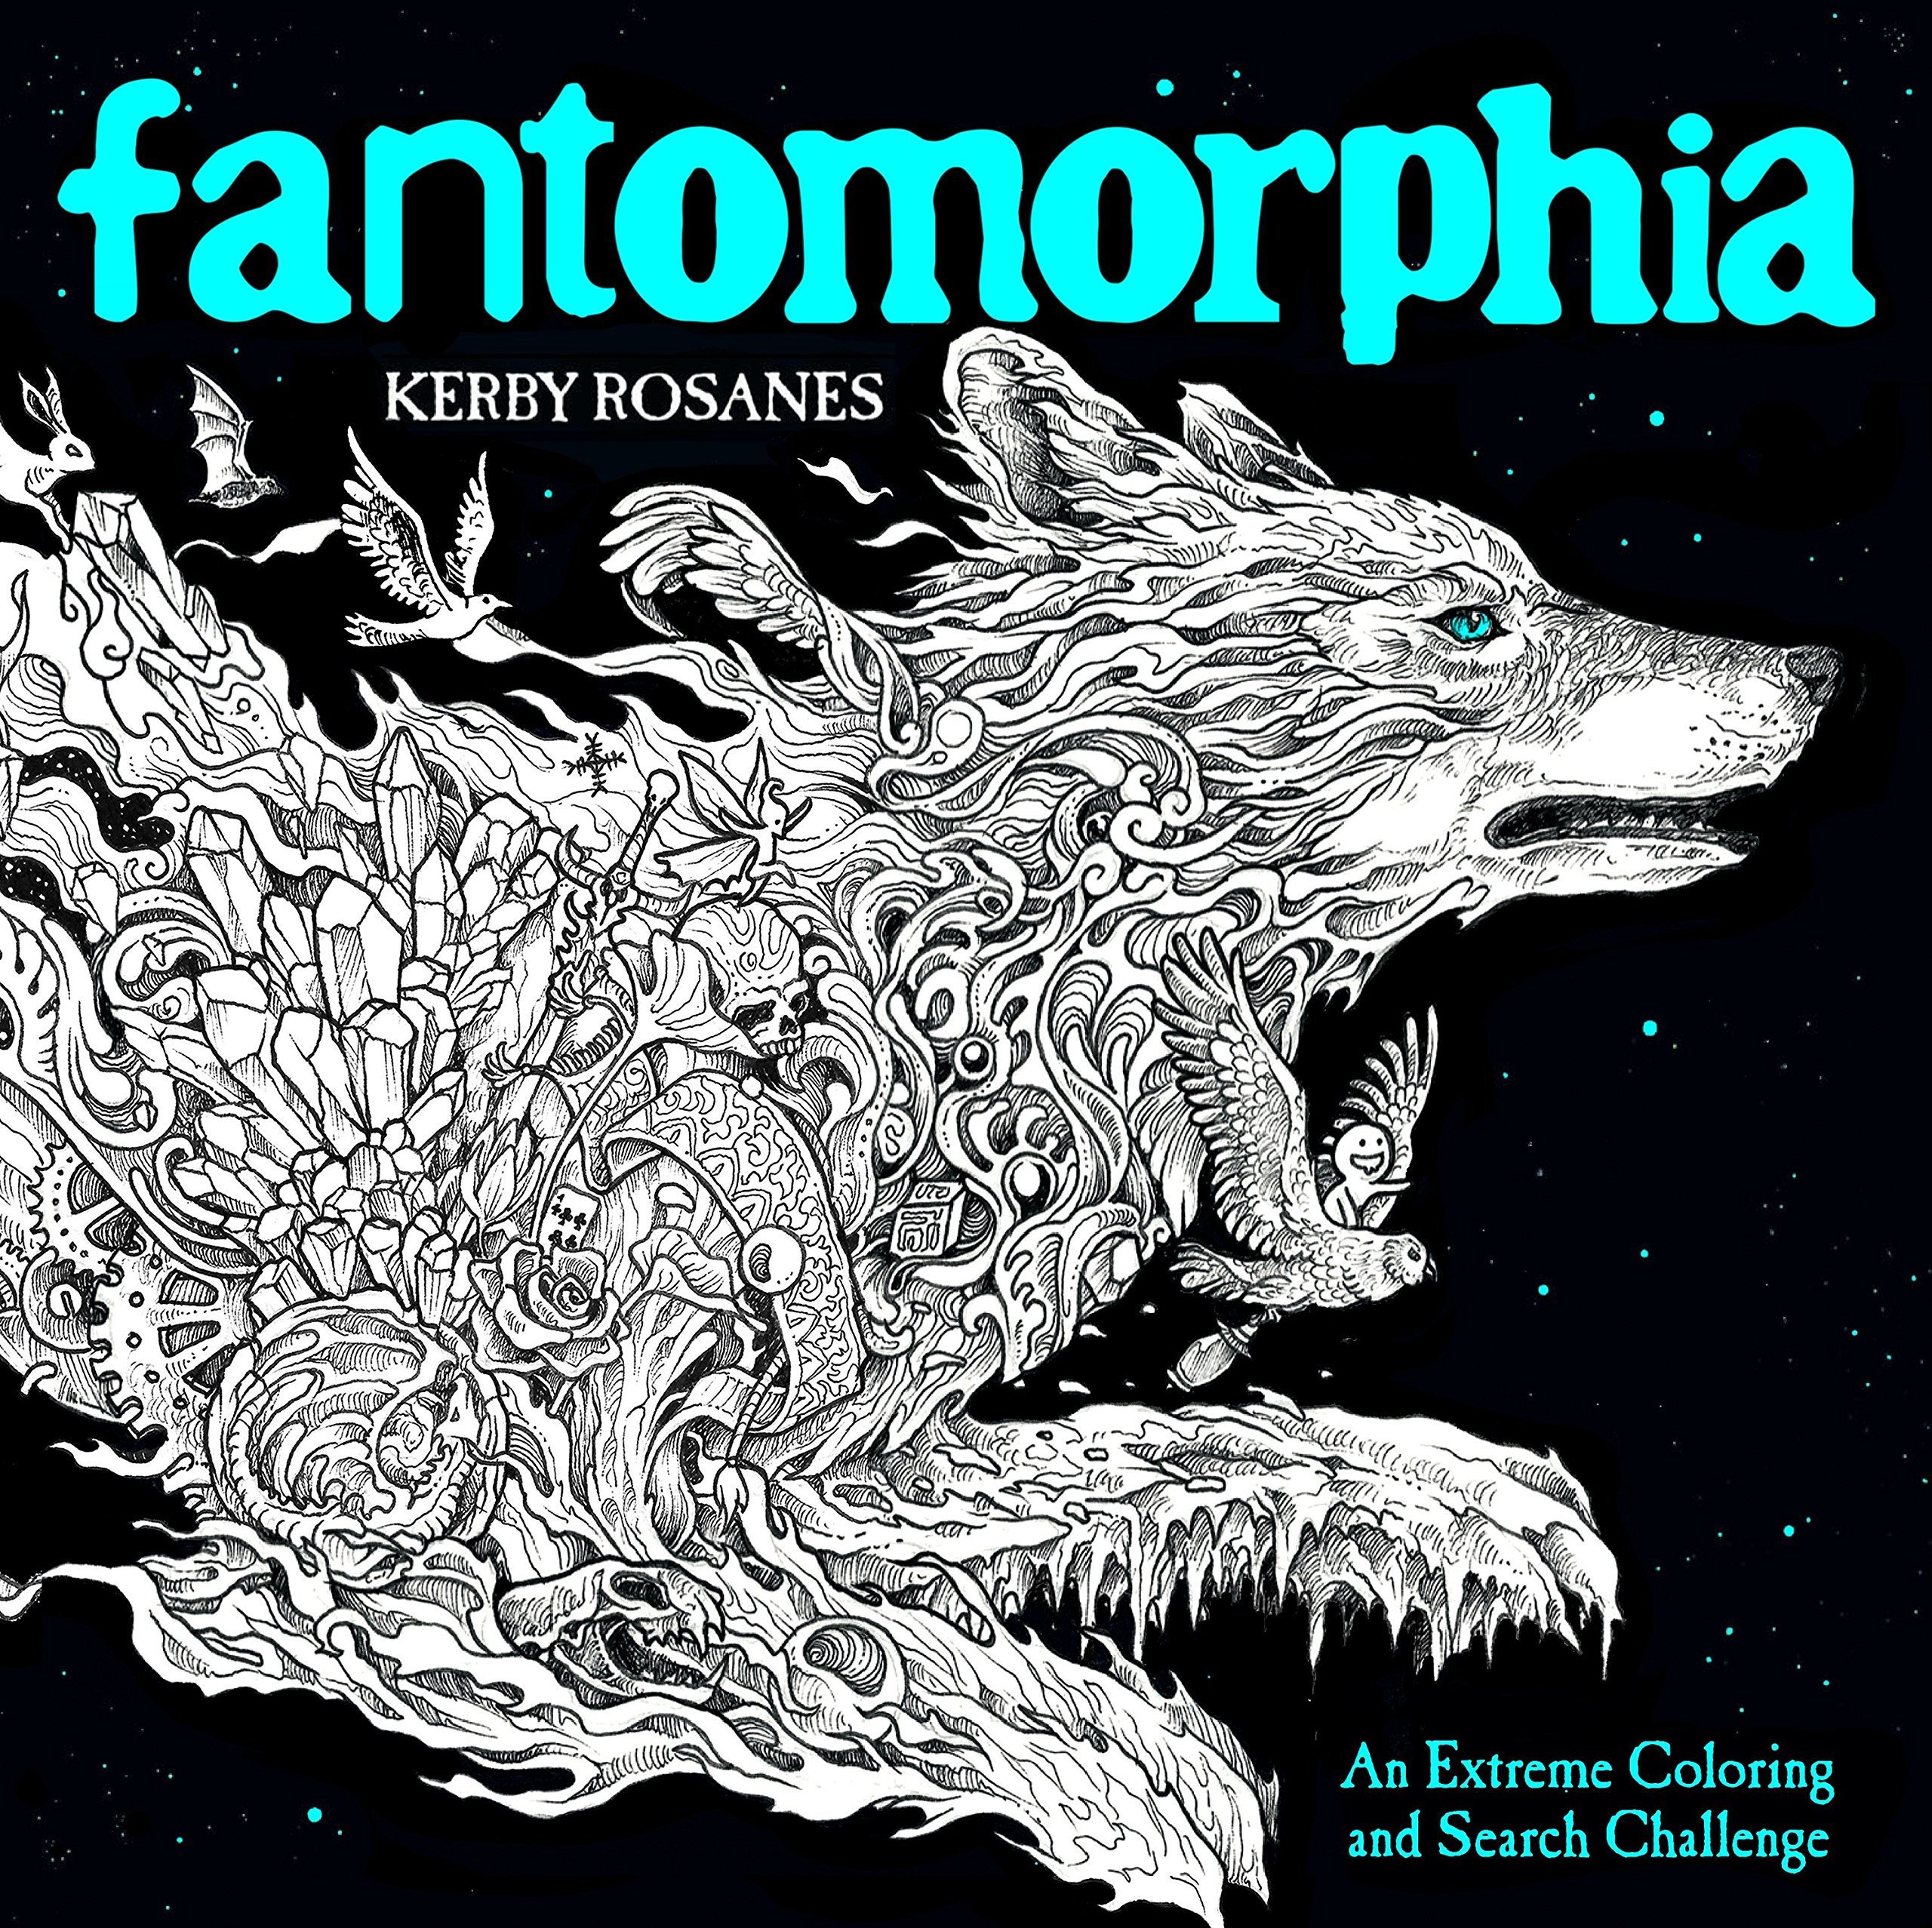 Amazon Com Fantomorphia An Extreme Coloring And Search Challenge 9780525536727 Rosanes Kerby Books